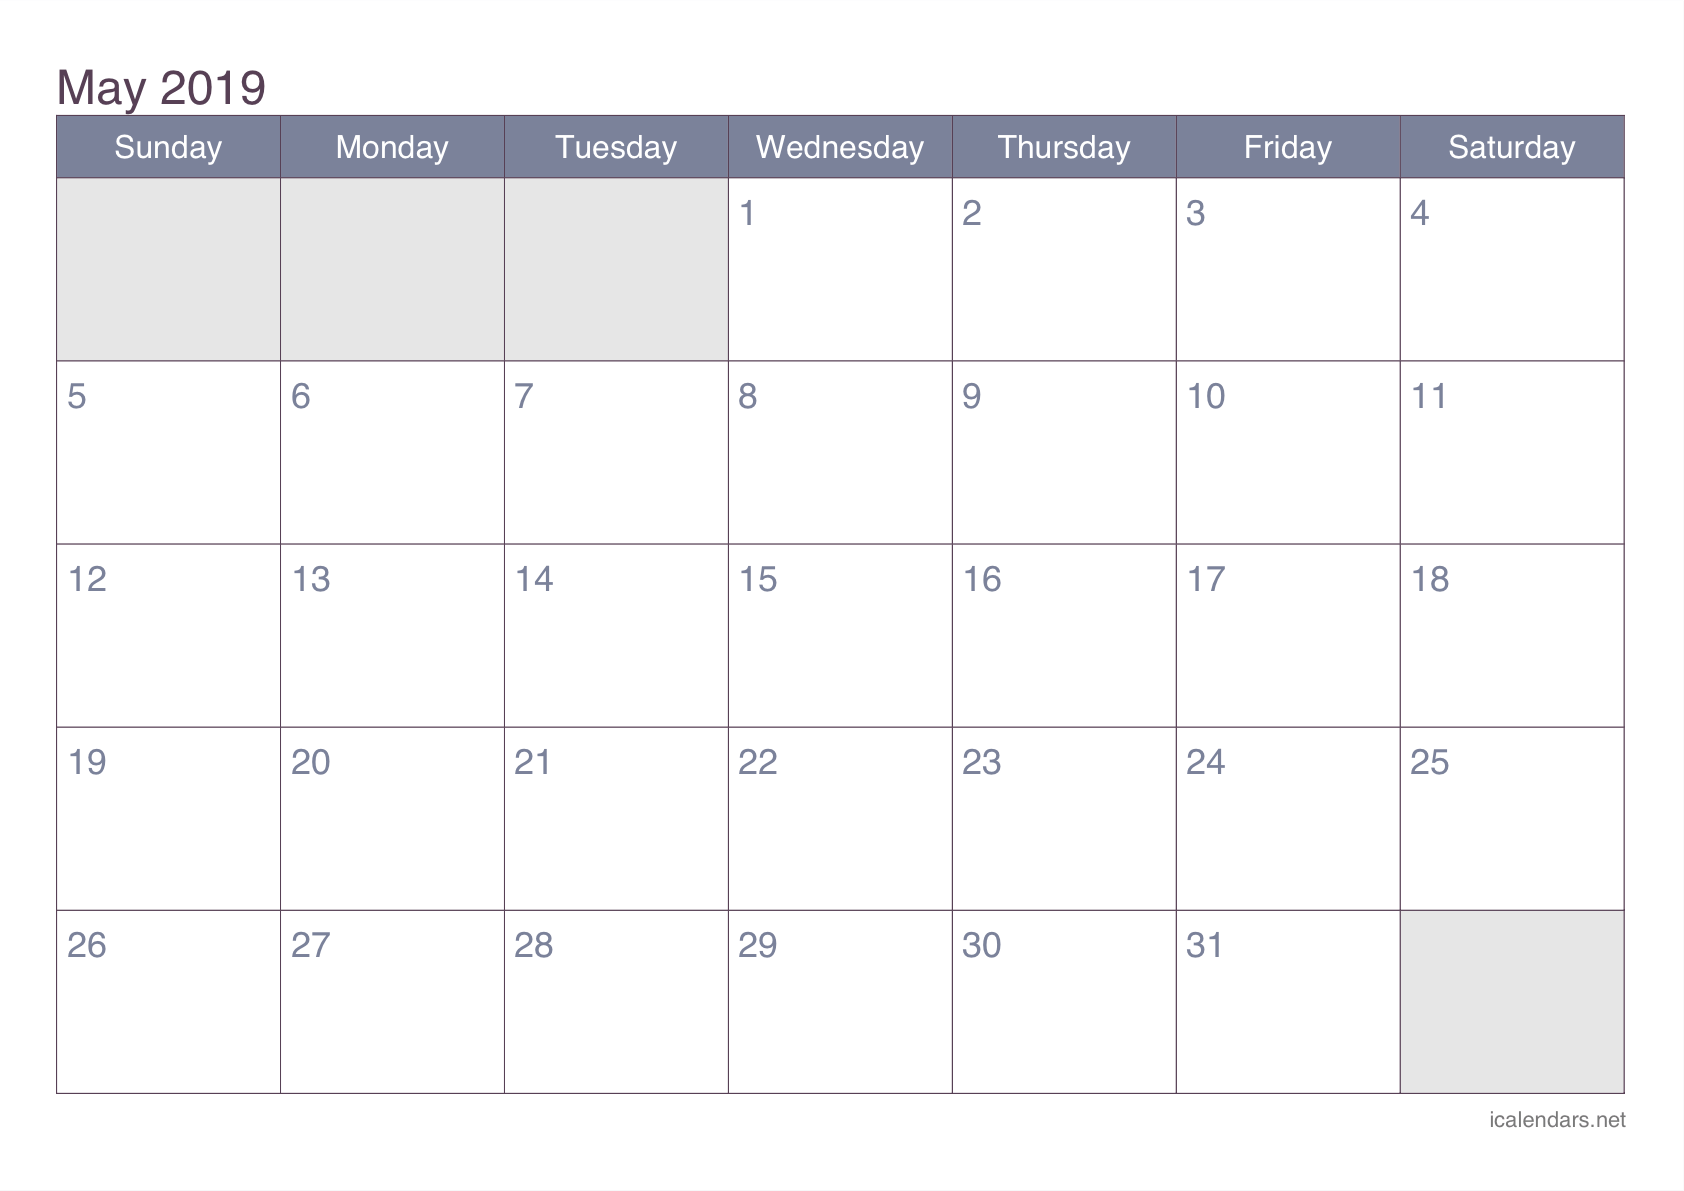 May 2019 Printable Calendar - icalendars.net